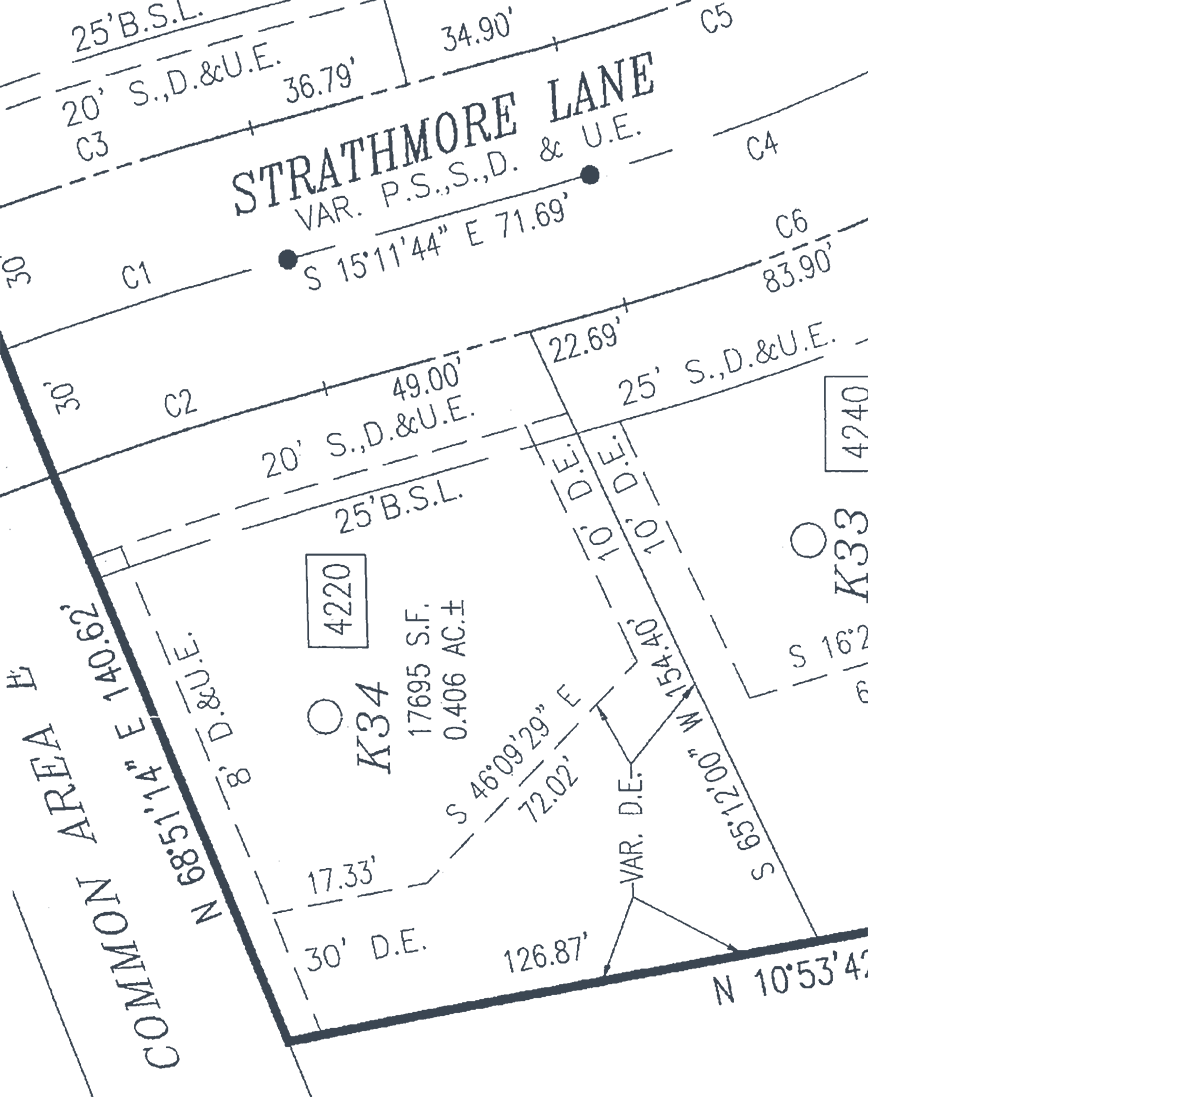 hf site layout